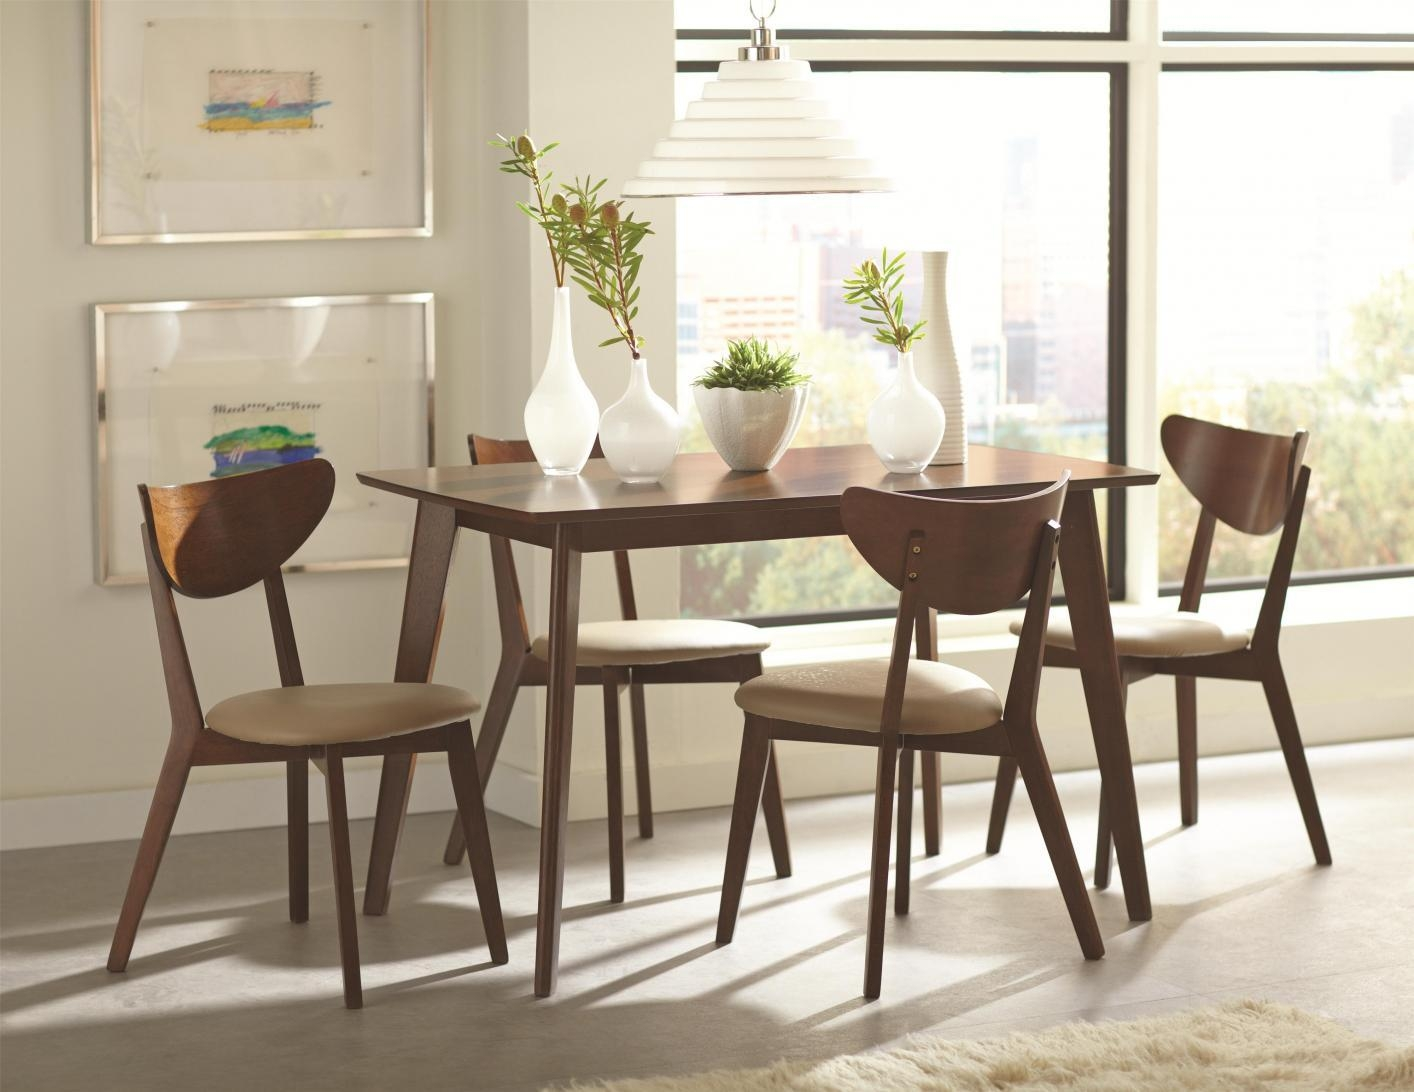 Brown Wood Dining Chair – Steal A Sofa Furniture Outlet Los Angeles Ca Intended For Dining Sofa Chairs (View 8 of 20)